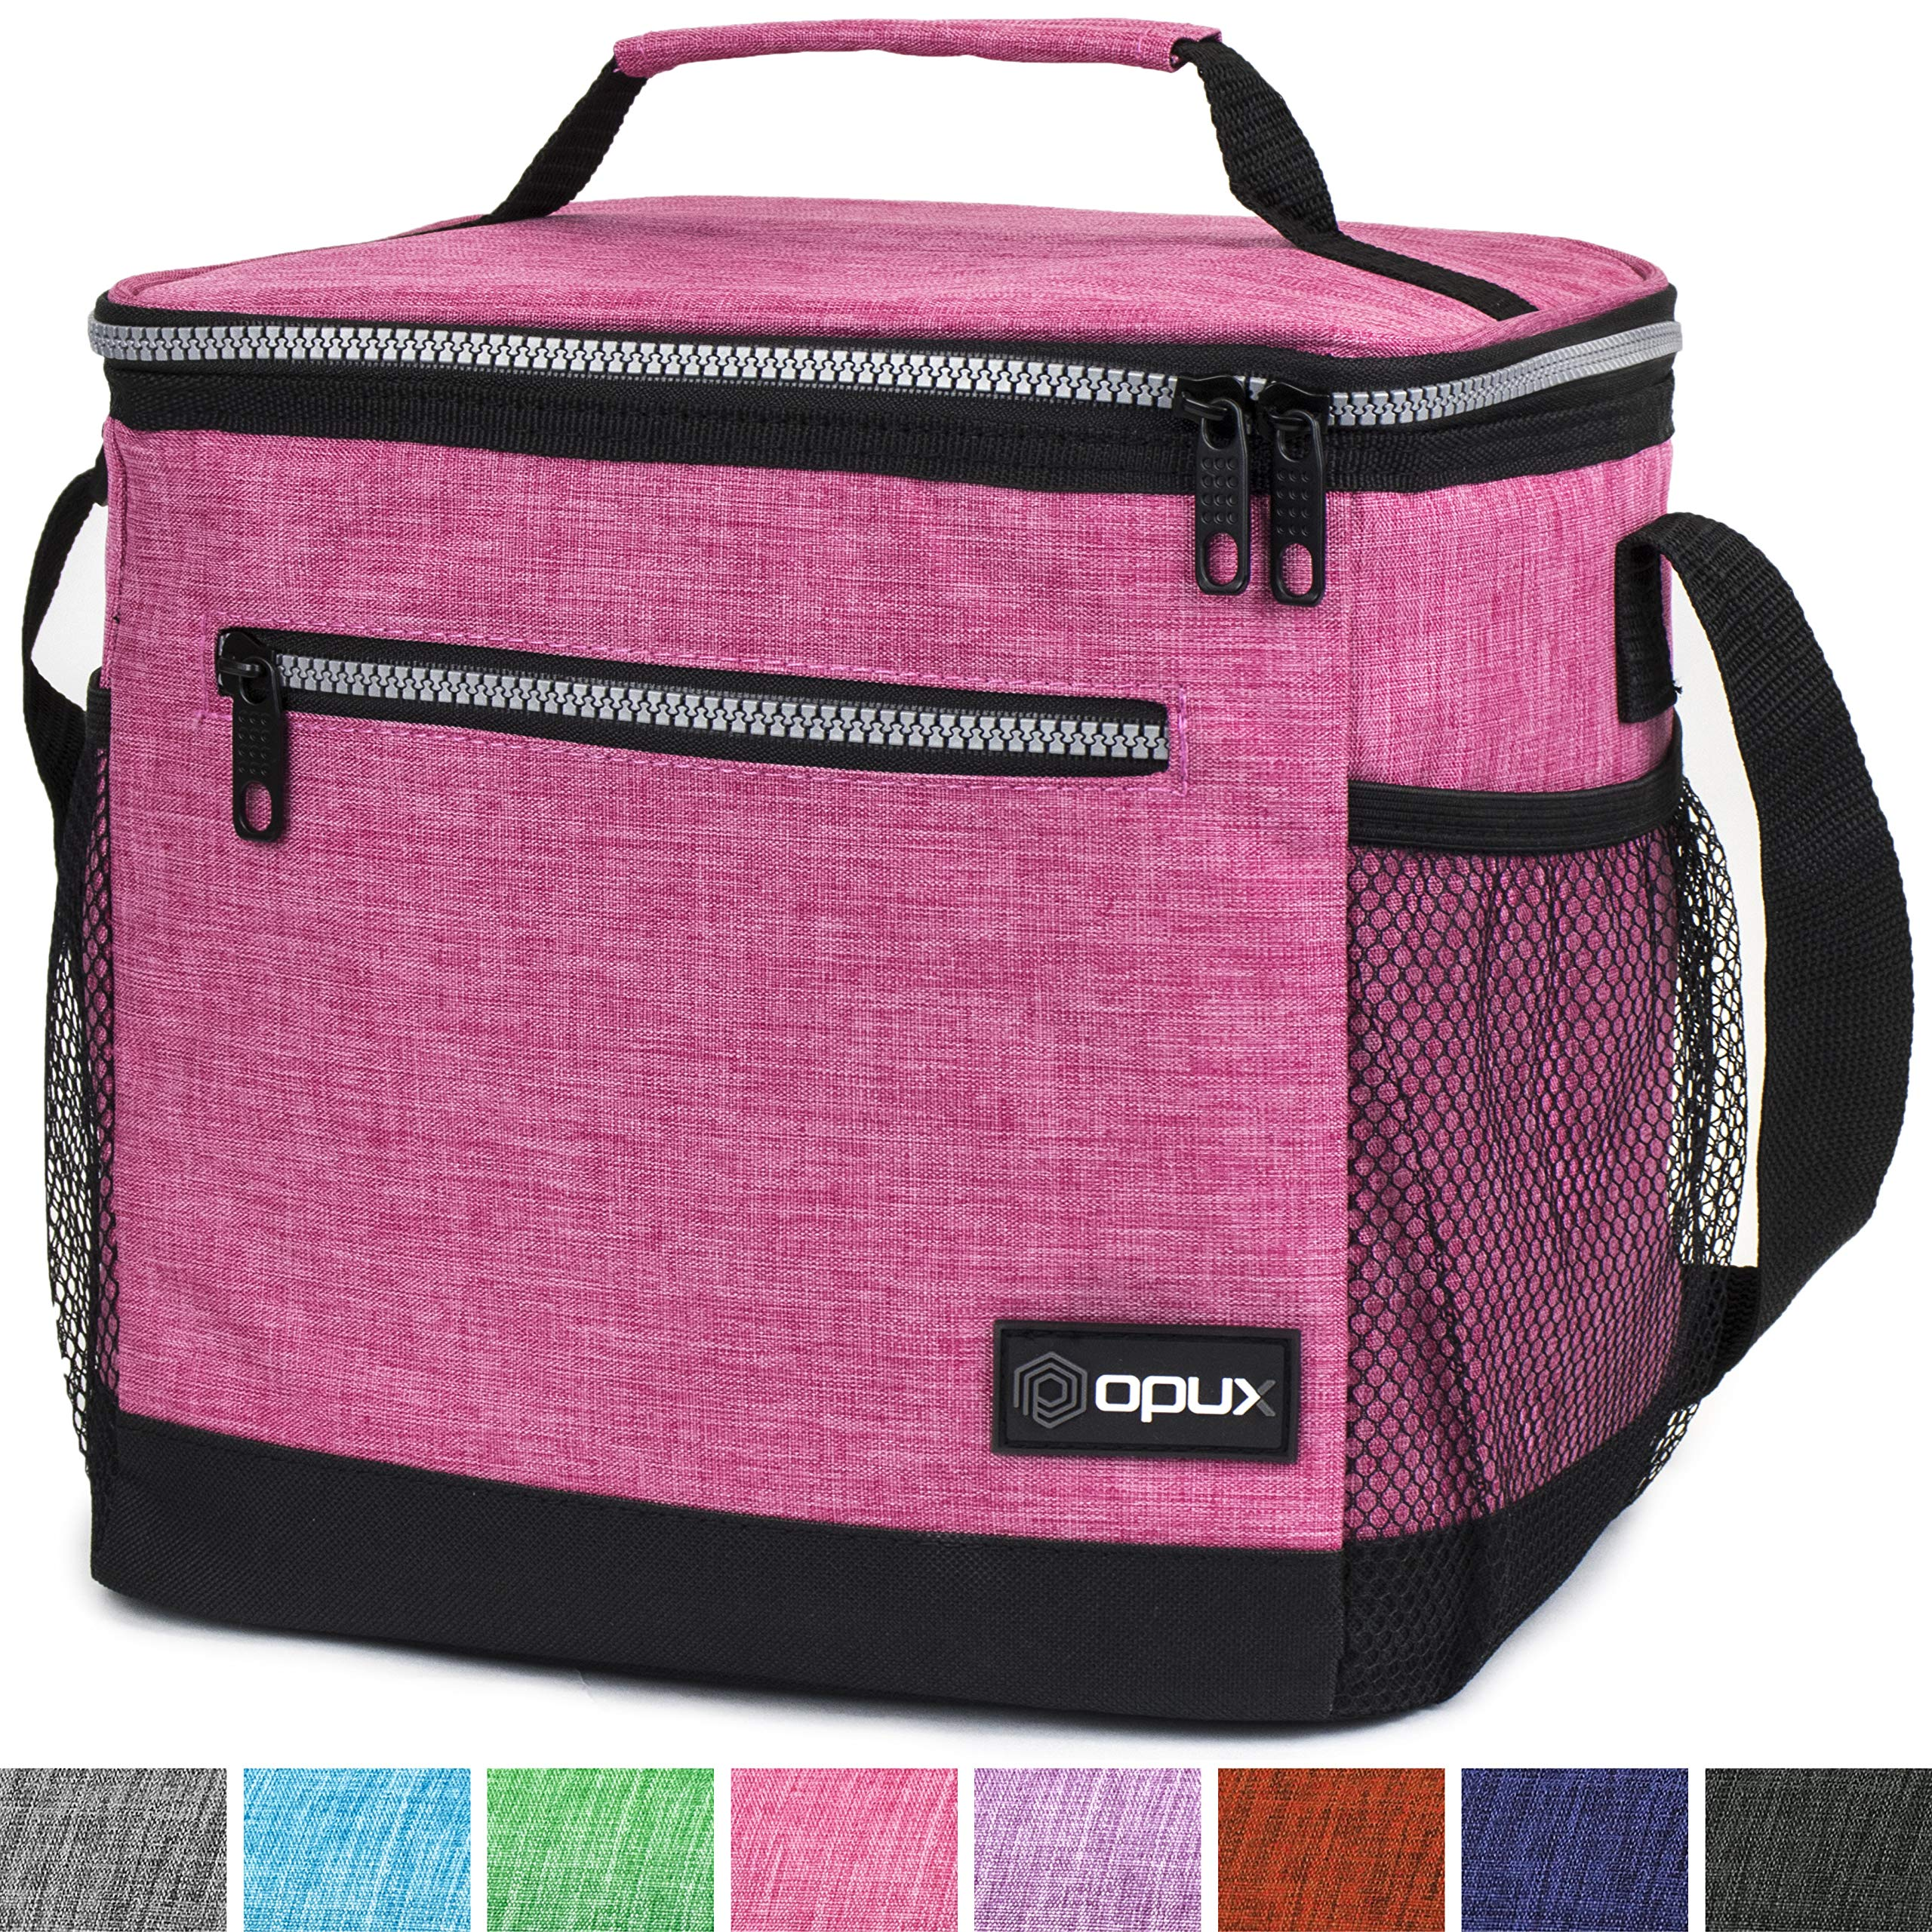 OPUX Premium Insulated Lunch Bag with Shoulder Strap | Lunch Box for Adults, Kids | Soft Leak Proof Liner | Tall Lunch Cooler for Office, School | Fits 18 Cans (Heather Pink)